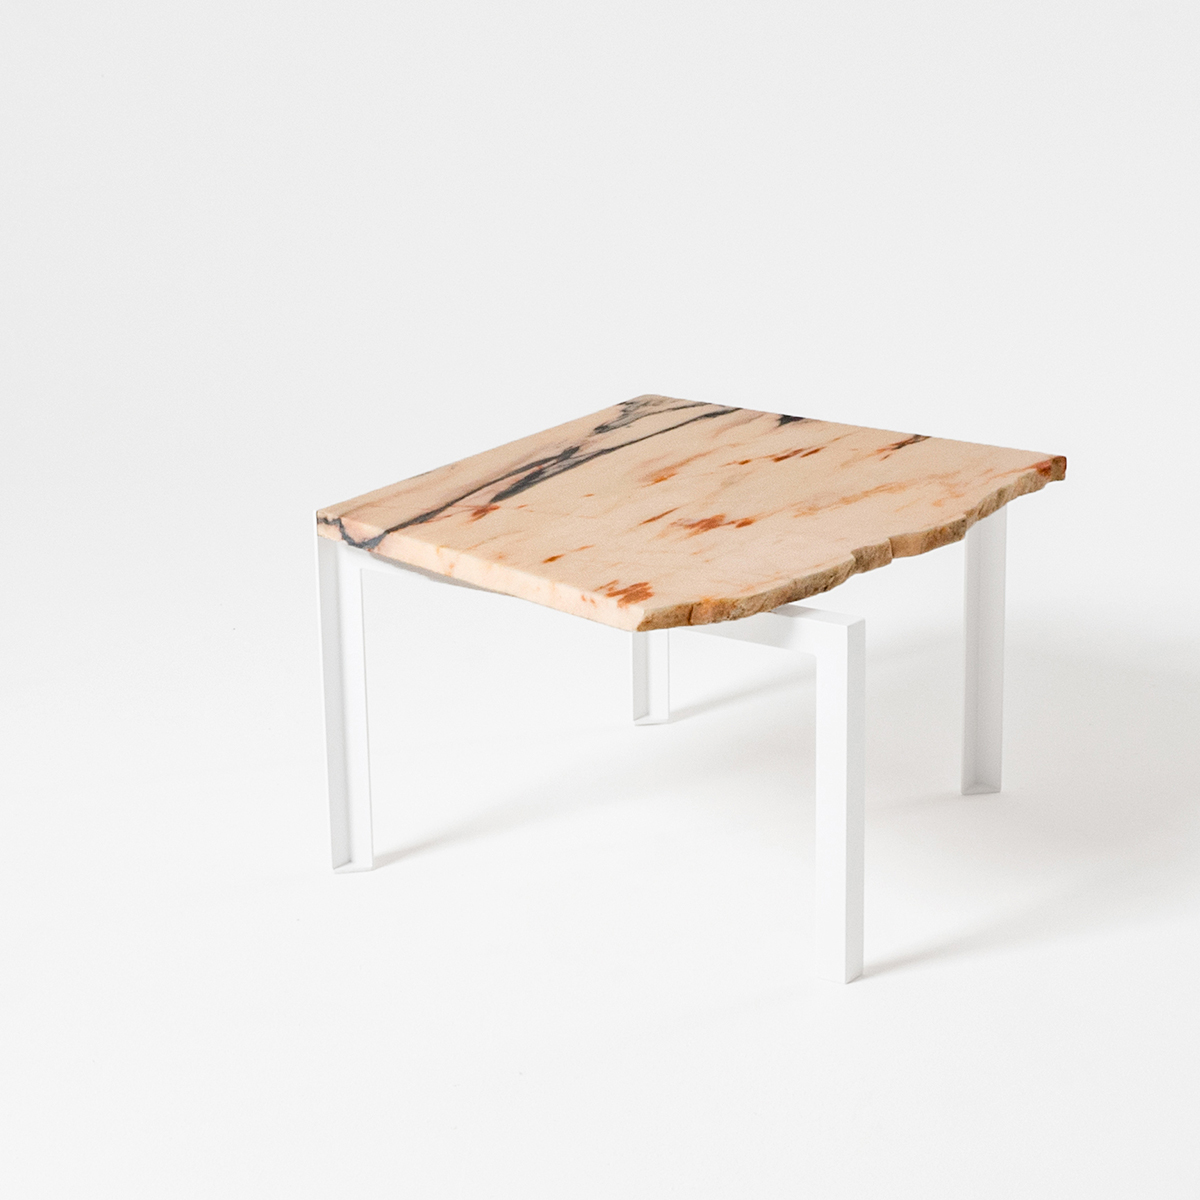 Atelierhaussmann marble table petite table d 39 angle by for Petite table d angle